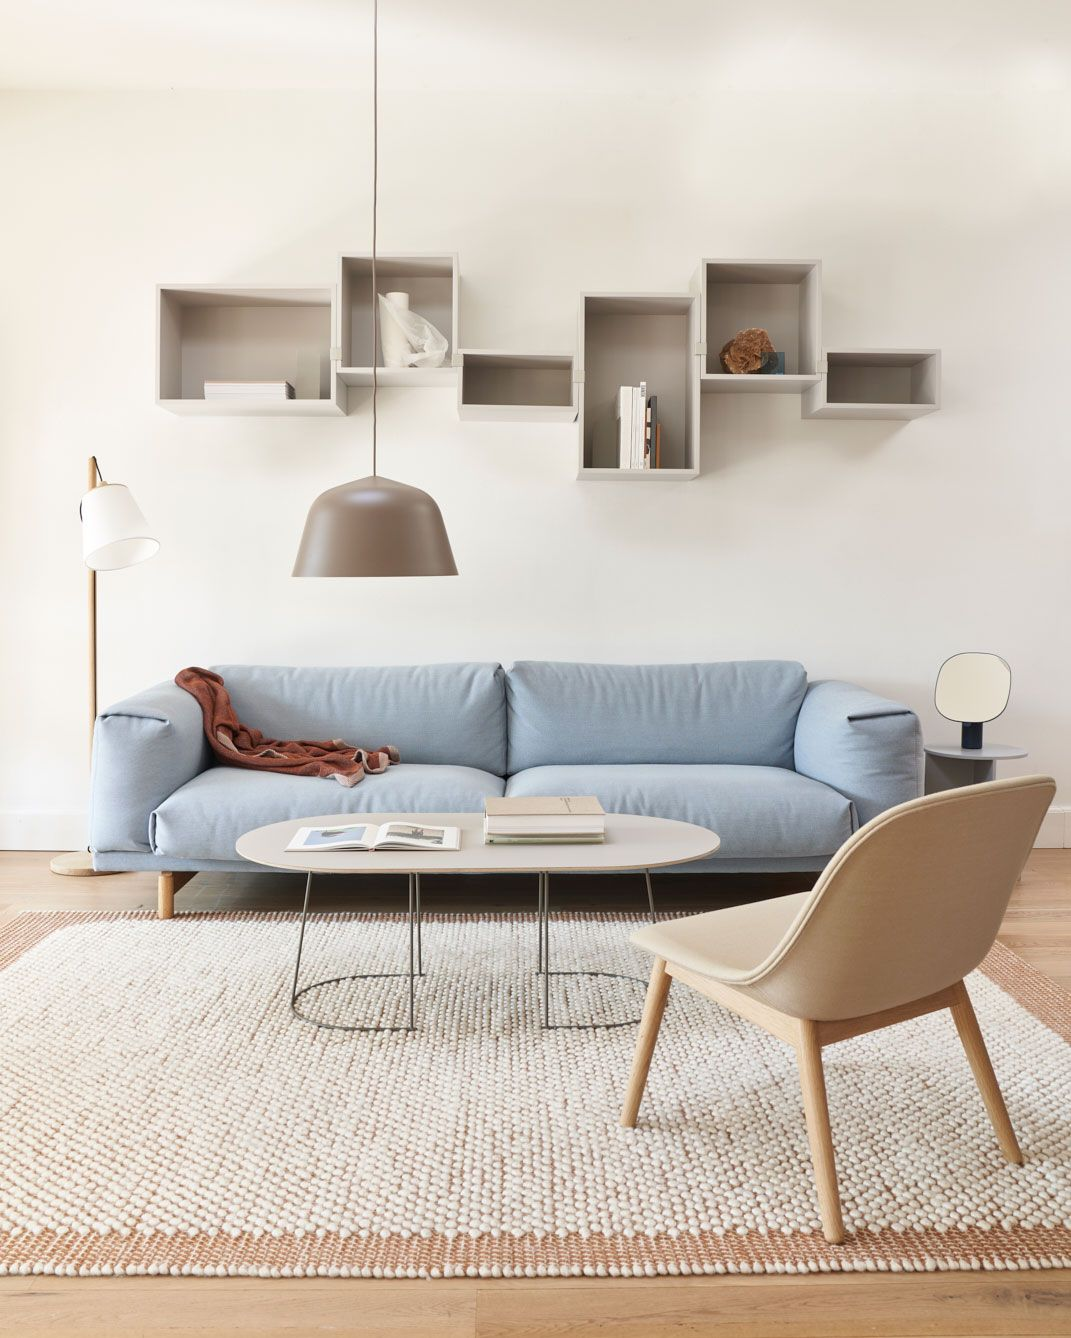 Scandinavian interior design inspiration from muuto rest sofa fiber lounge chair and the airy coffee table